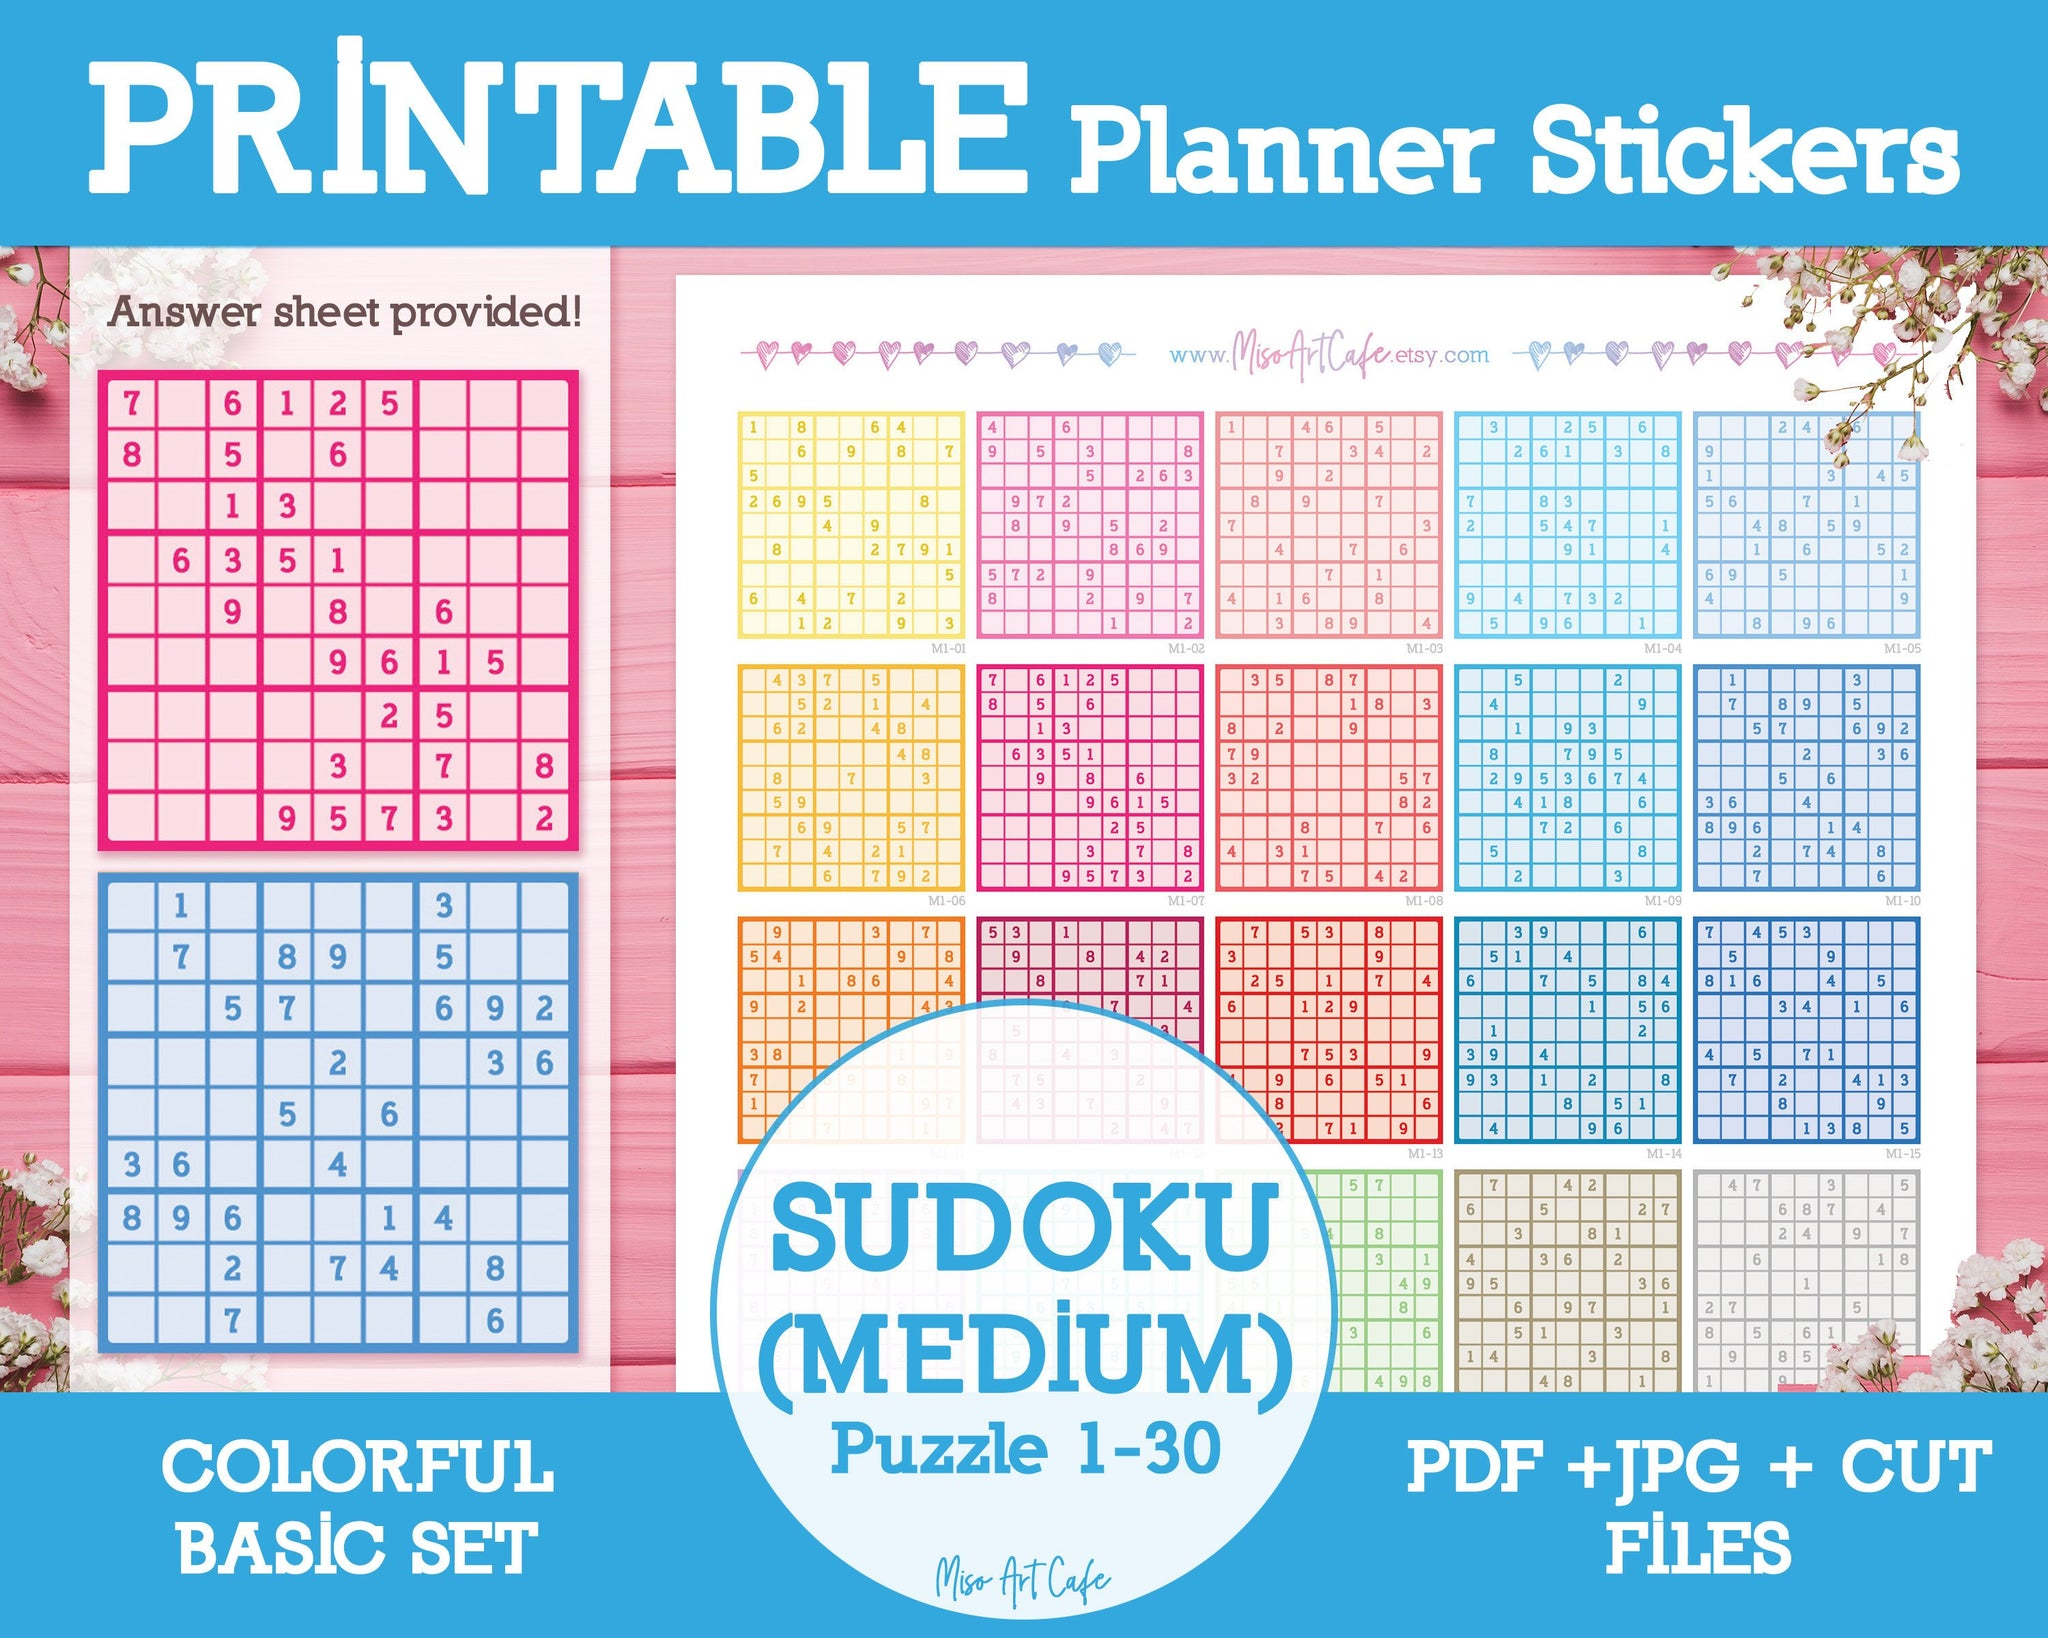 Printable Sudoku (Medium) - Colorful Basic Planner Stickers - Miso Art Cafe